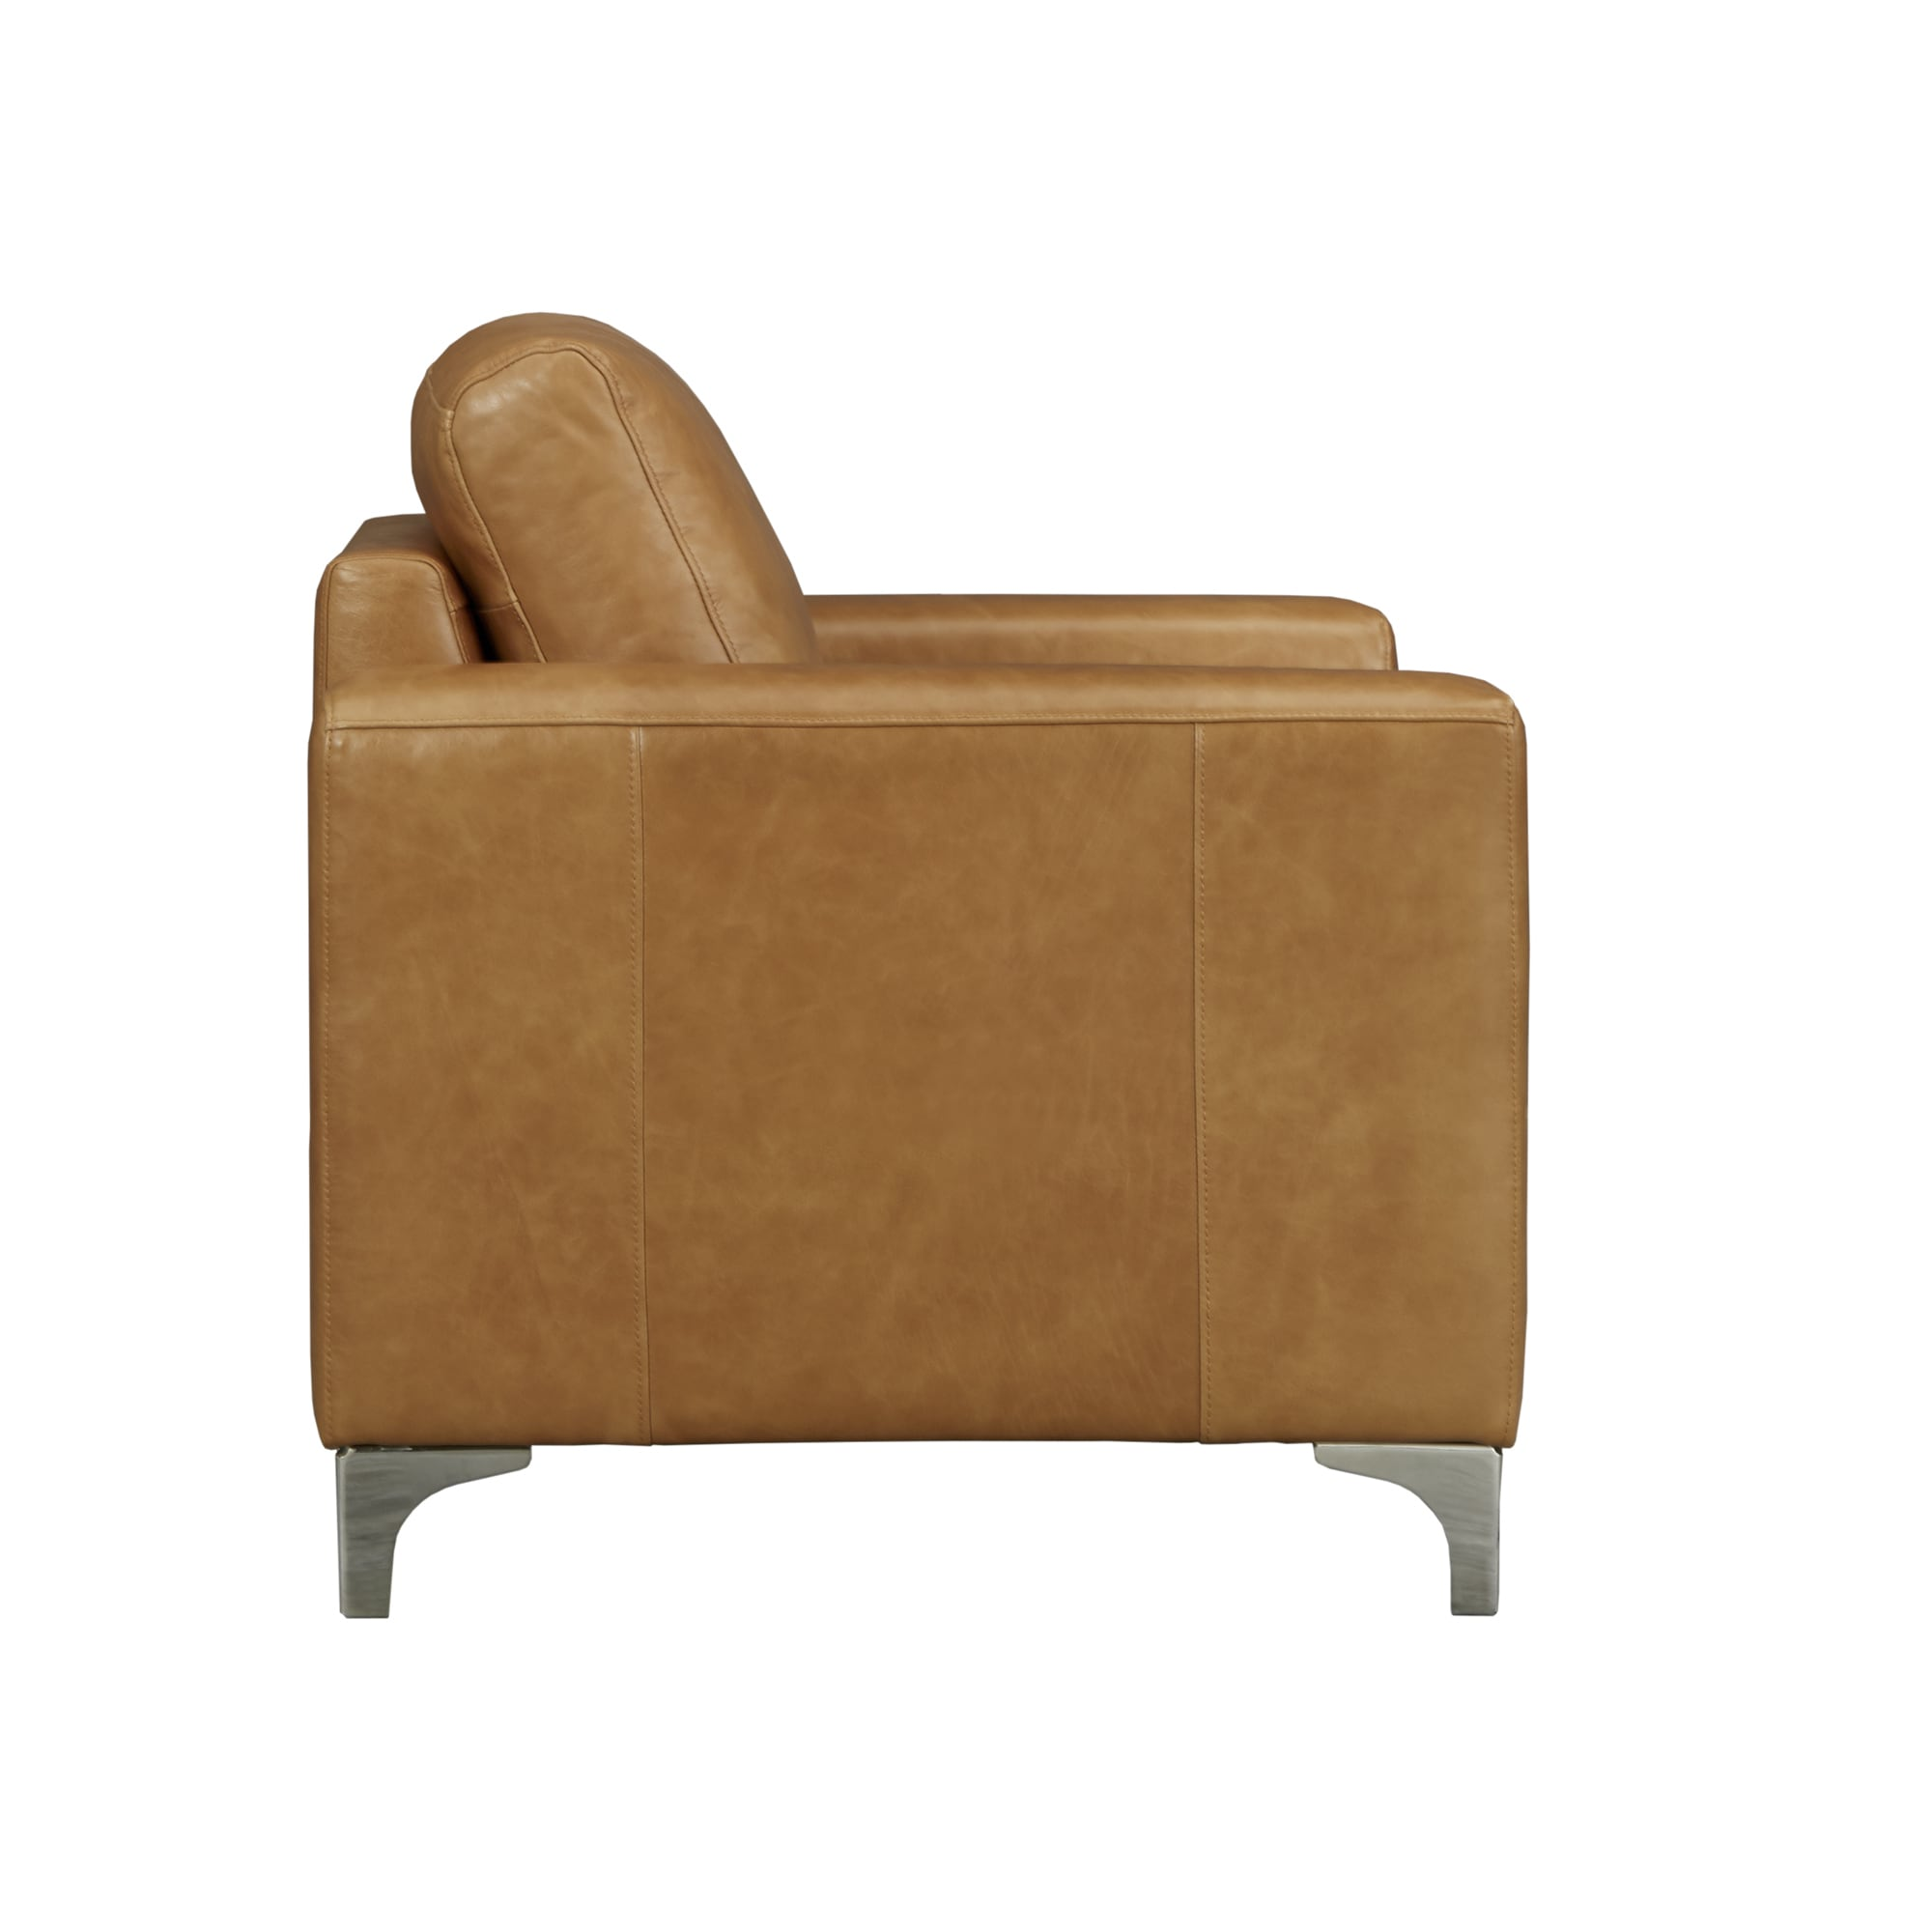 Bastian Aniline Leather Chair iNSPIRE Q Modern - Free Shipping Today -  Overstock.com - 20729818